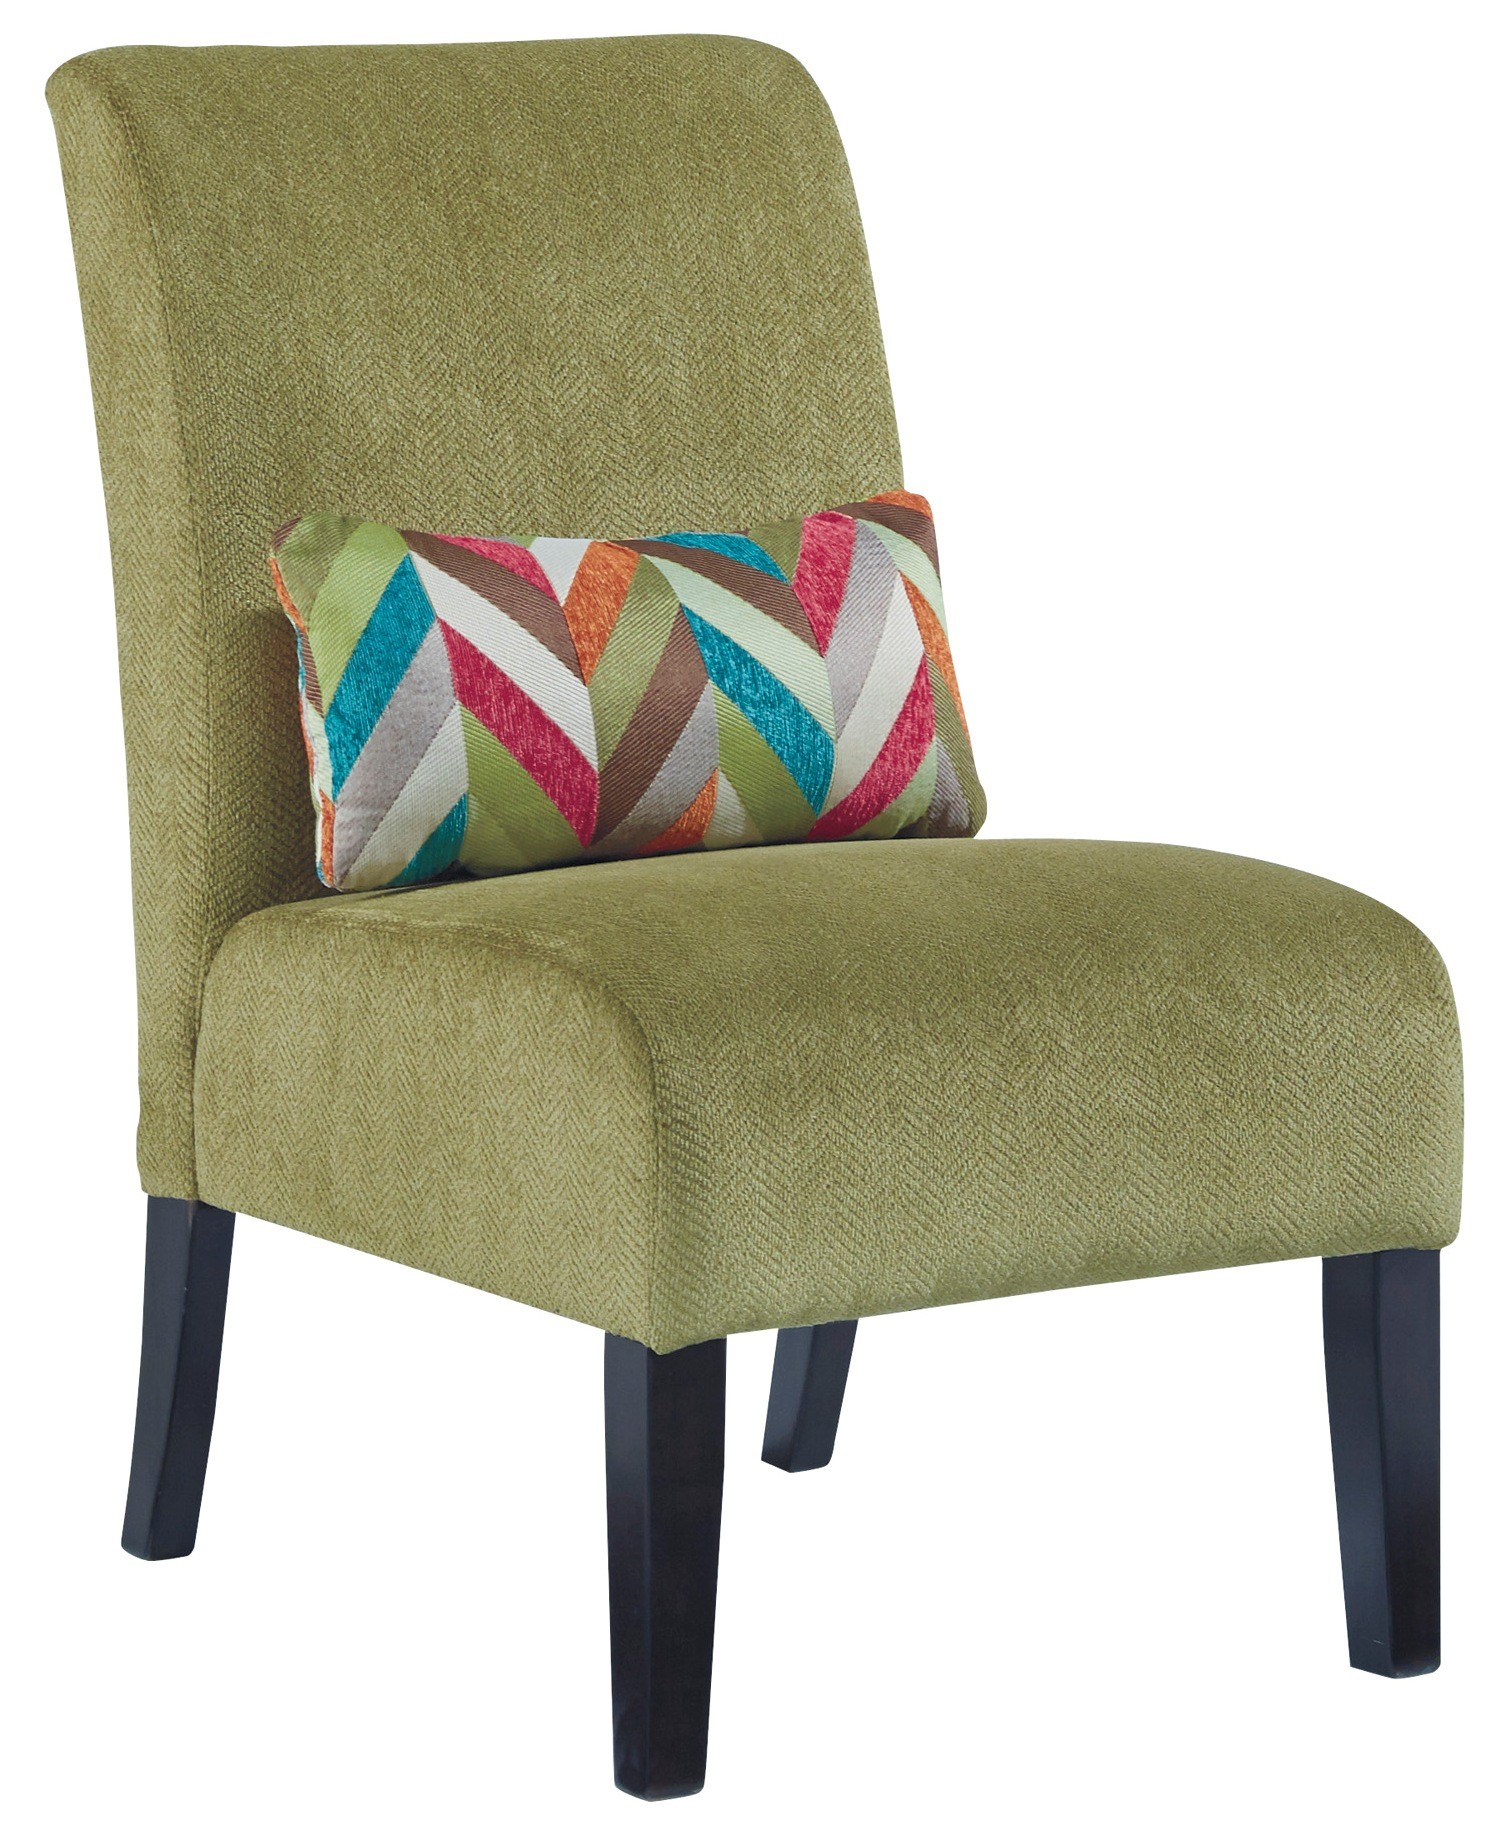 Annora Green Accent Chair From Ashley 6160360 Coleman